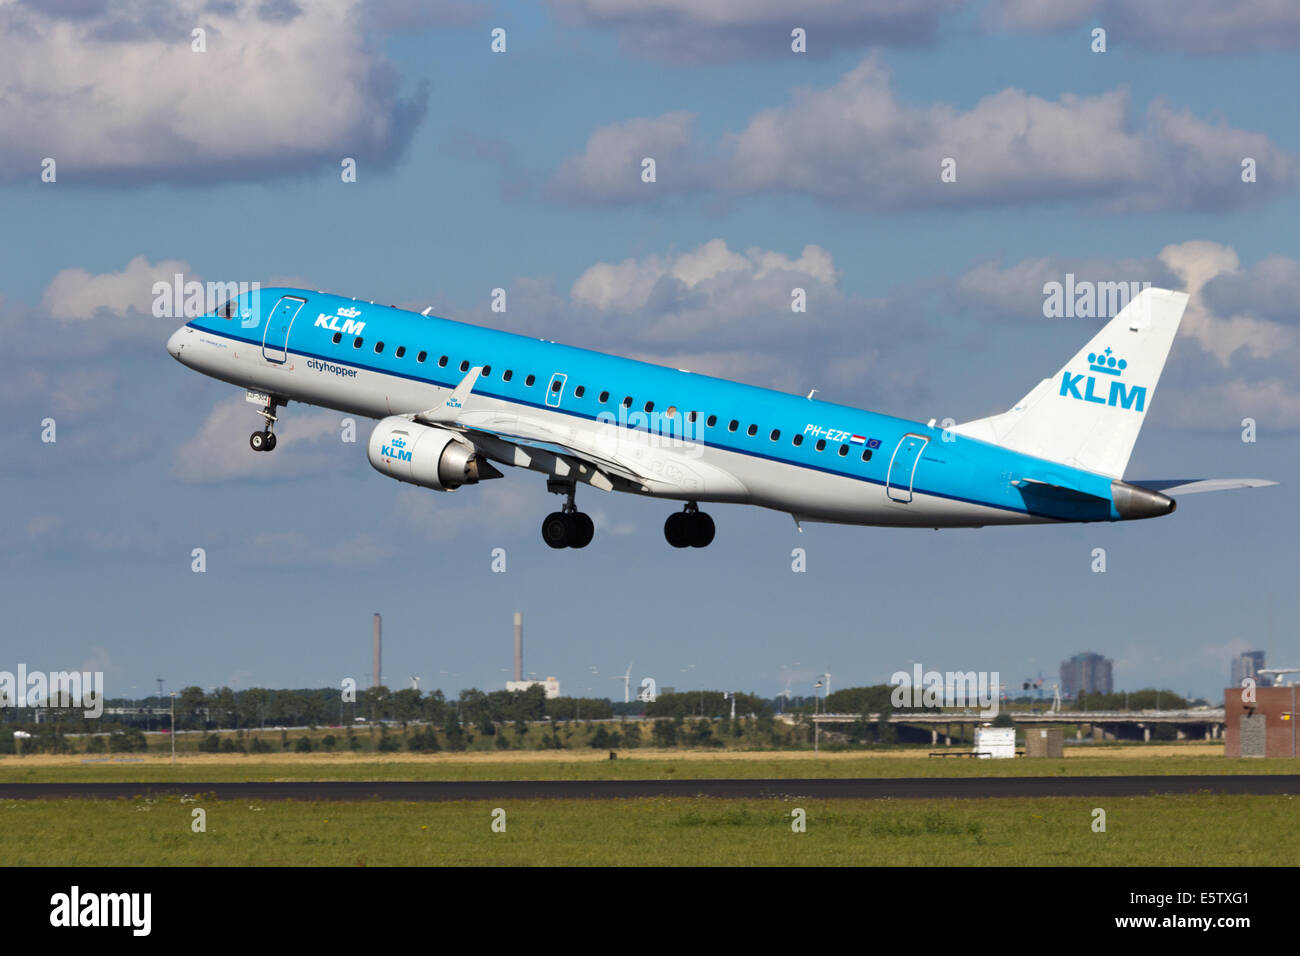 KLM Embraer ERJ-190 taking off from Schiphol airport - Stock Image